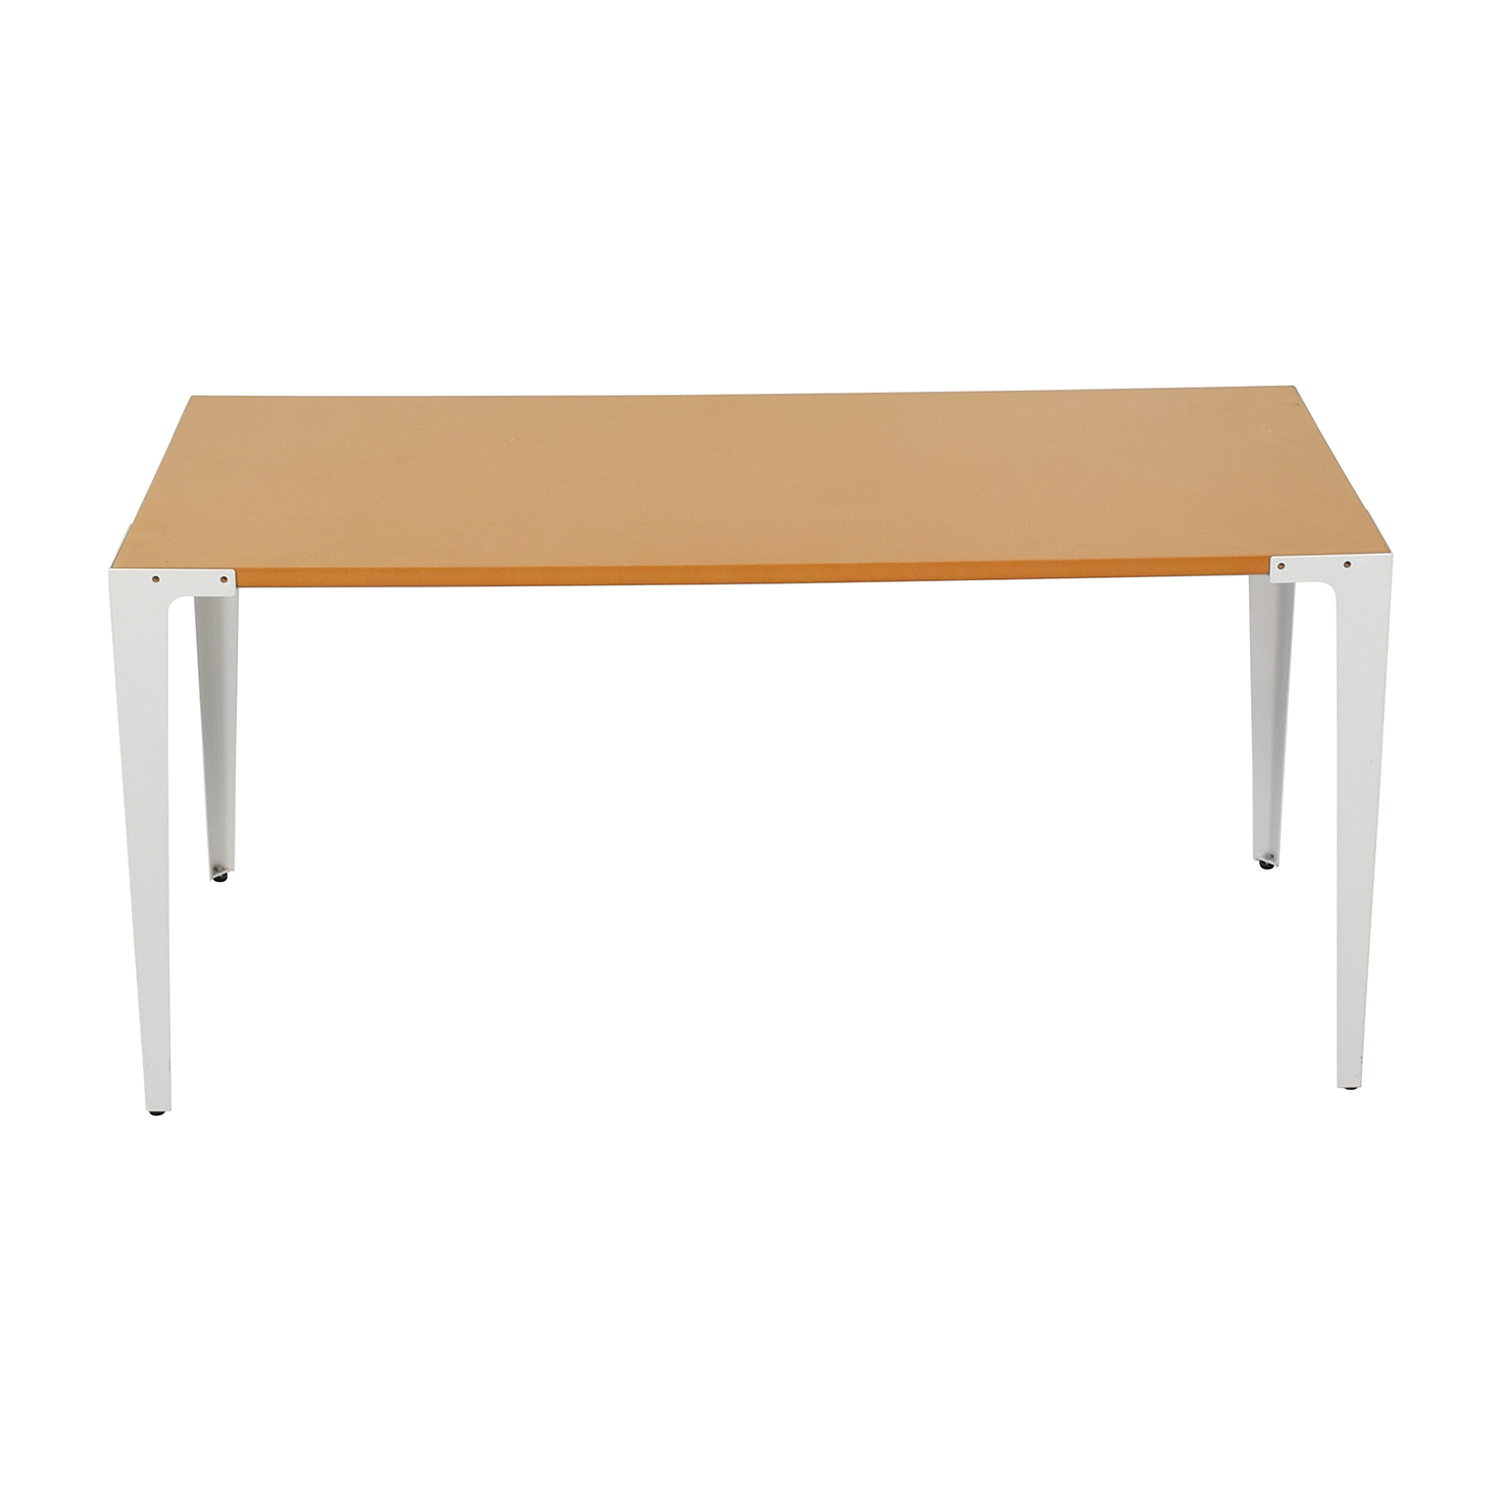 Crate & Barrel Crate &  Barrel Yellow and White Modern Desk Tables